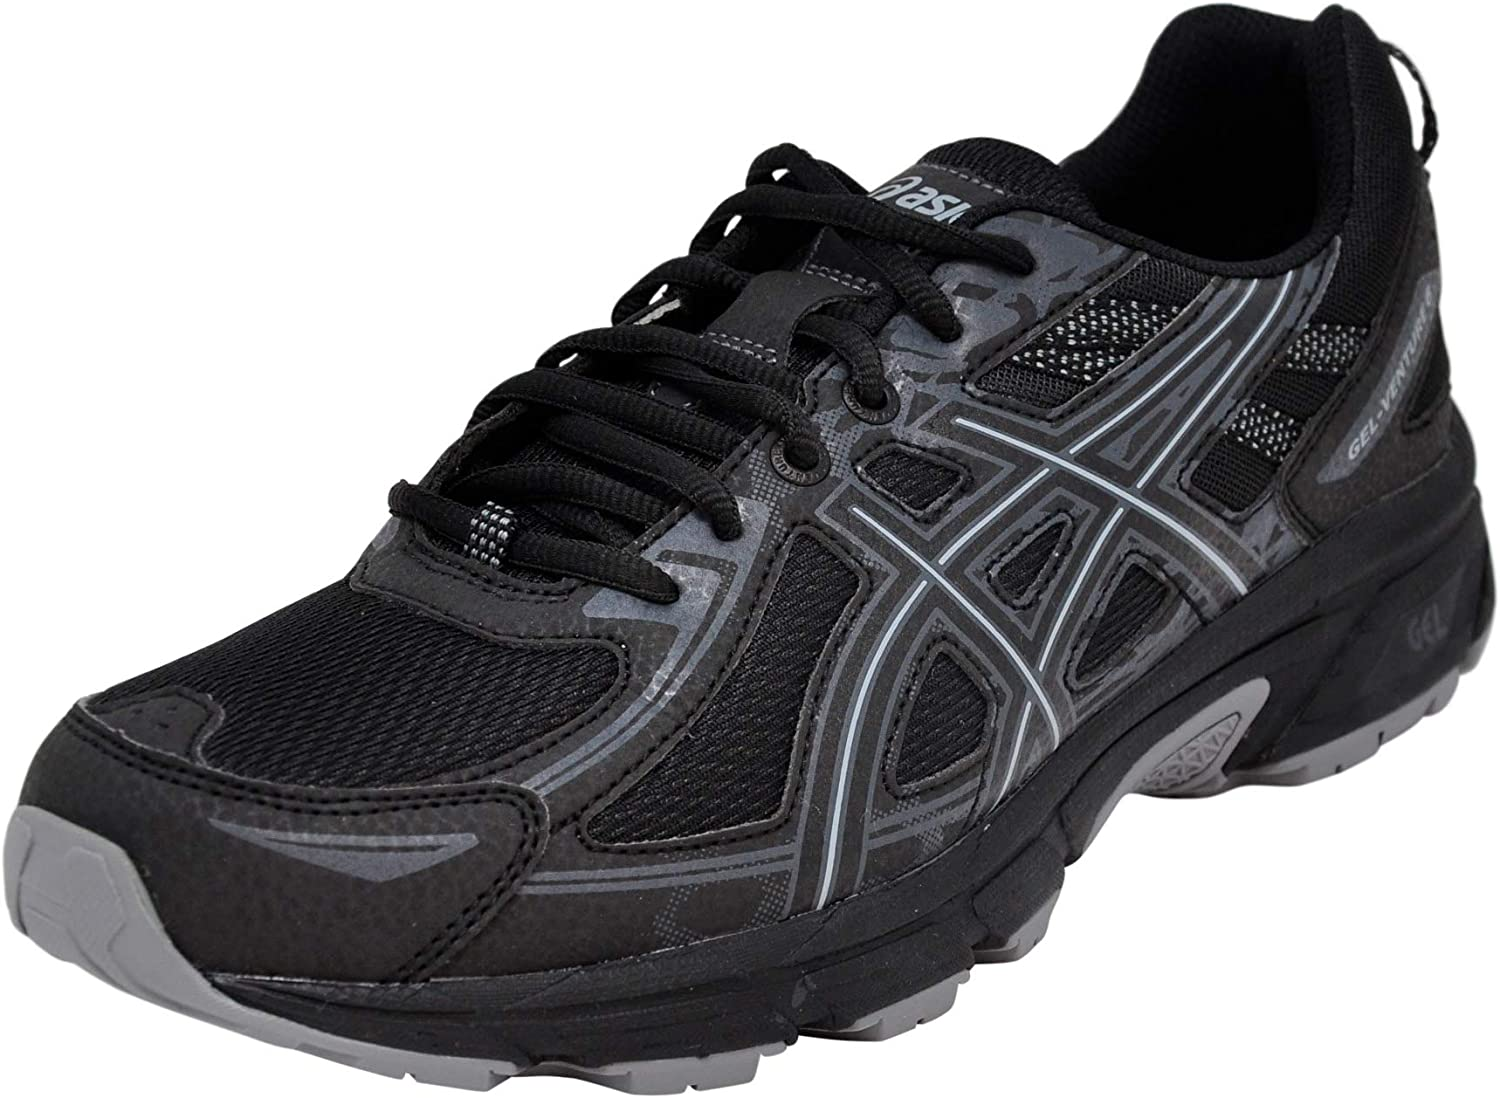 ASICS mens t7g1n Mens Gel-venture 6 Black Size: 11 UK: Amazon.co.uk: Shoes  & Bags